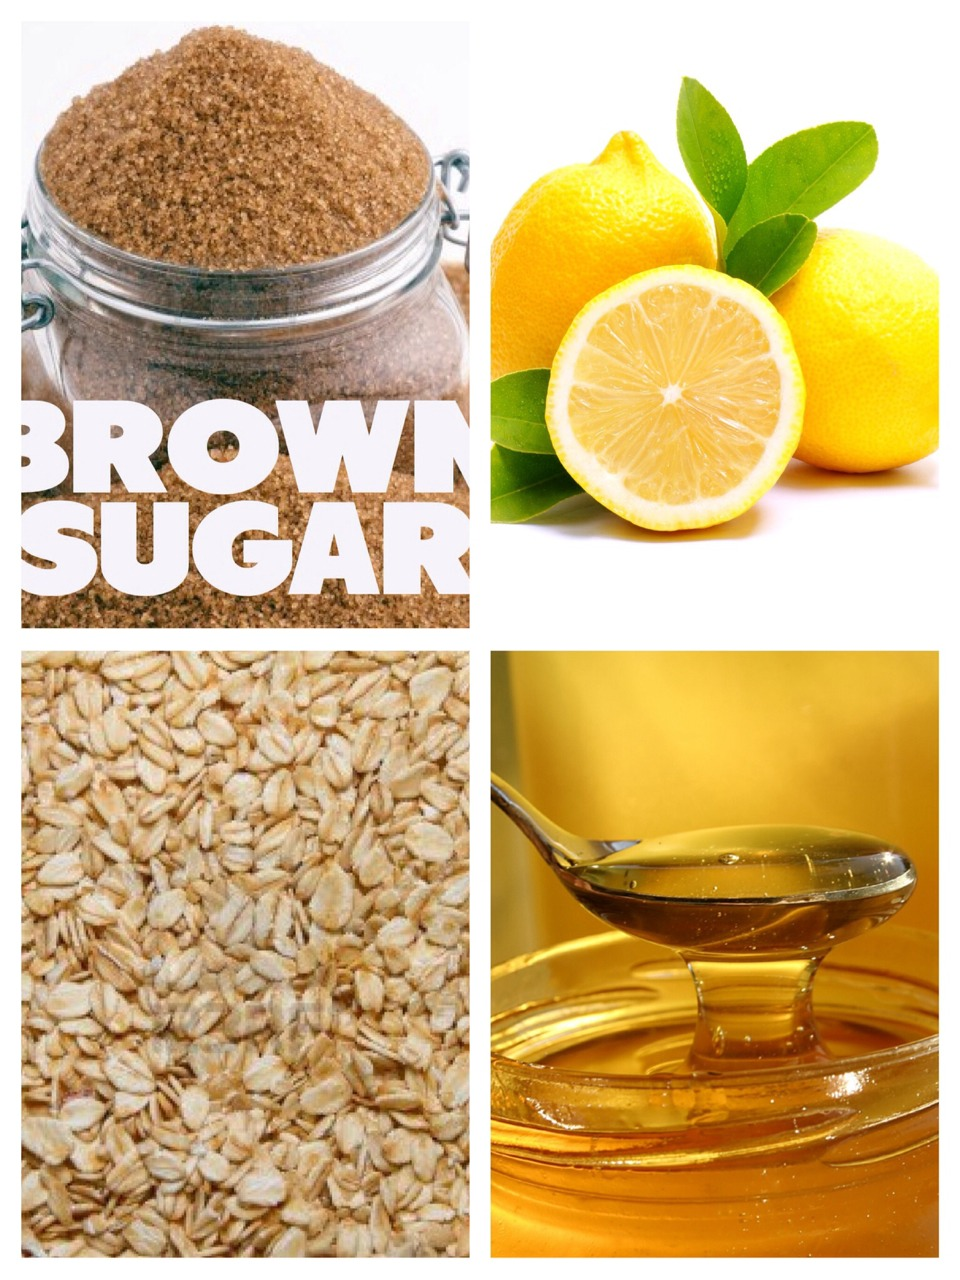 ❤️What you will need:   👉Ingredients:  1/2-1 tbs. of oatmeal 1/2-1 tbs. of Honey  1 tbs. of Lemon  1 tbs. of Brown sugar  👉Mix the ingredients all together in a bowl ...